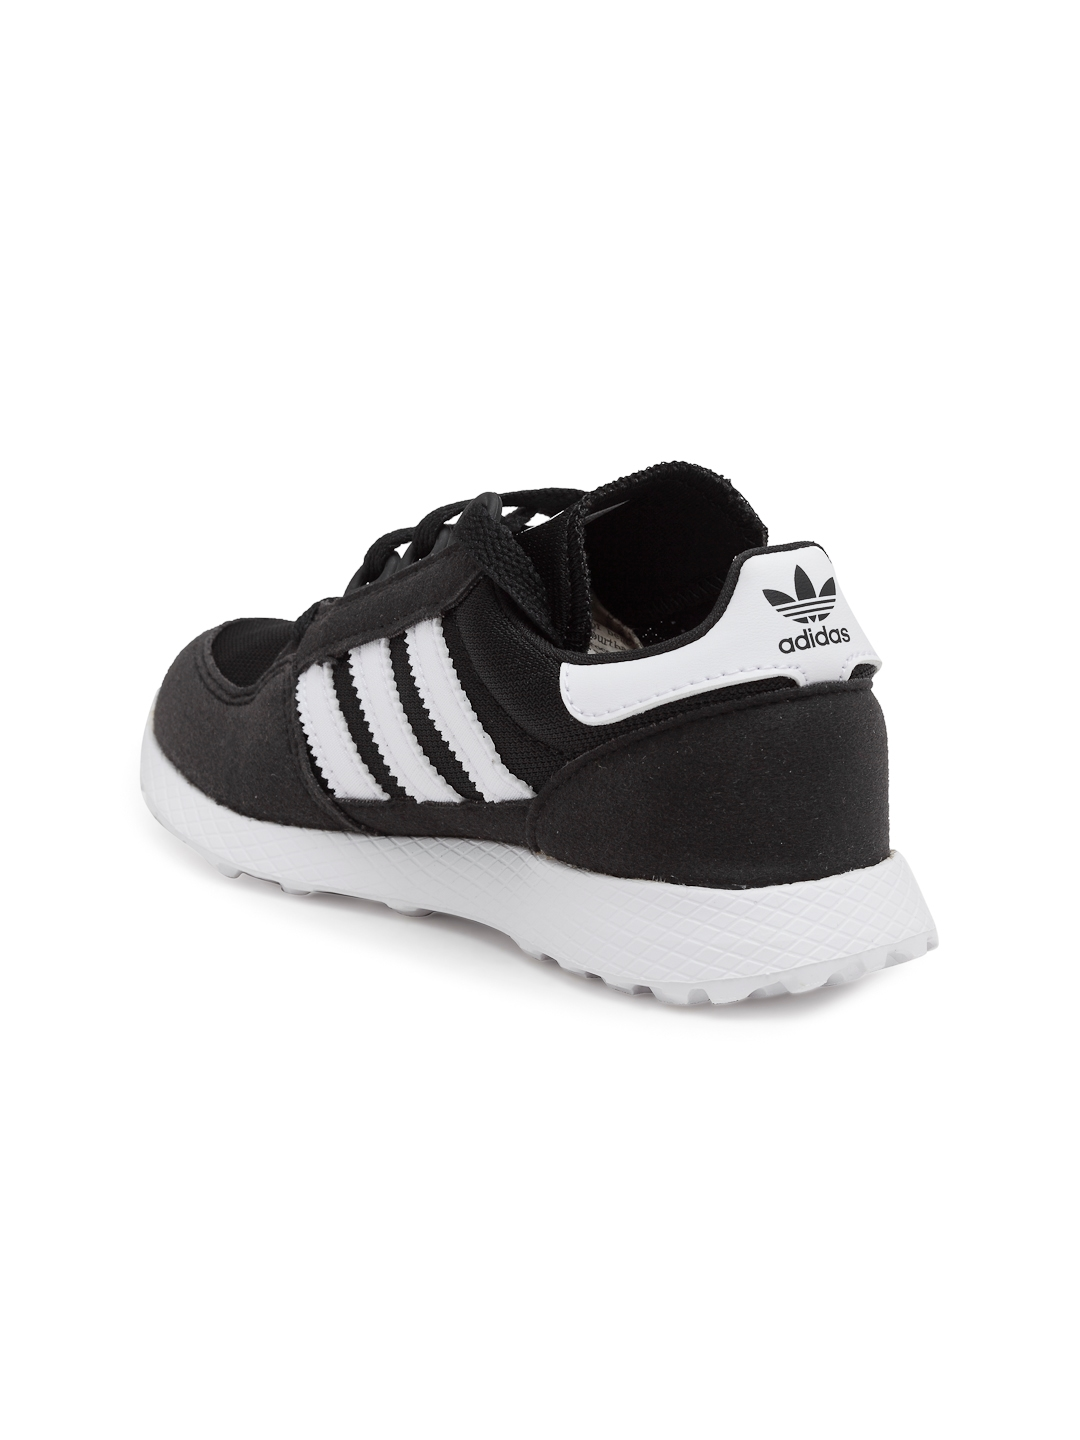 sports shoes 8fcf0 a4bb7 ADIDAS Originals Kids Black Forest Grove C Sneakers